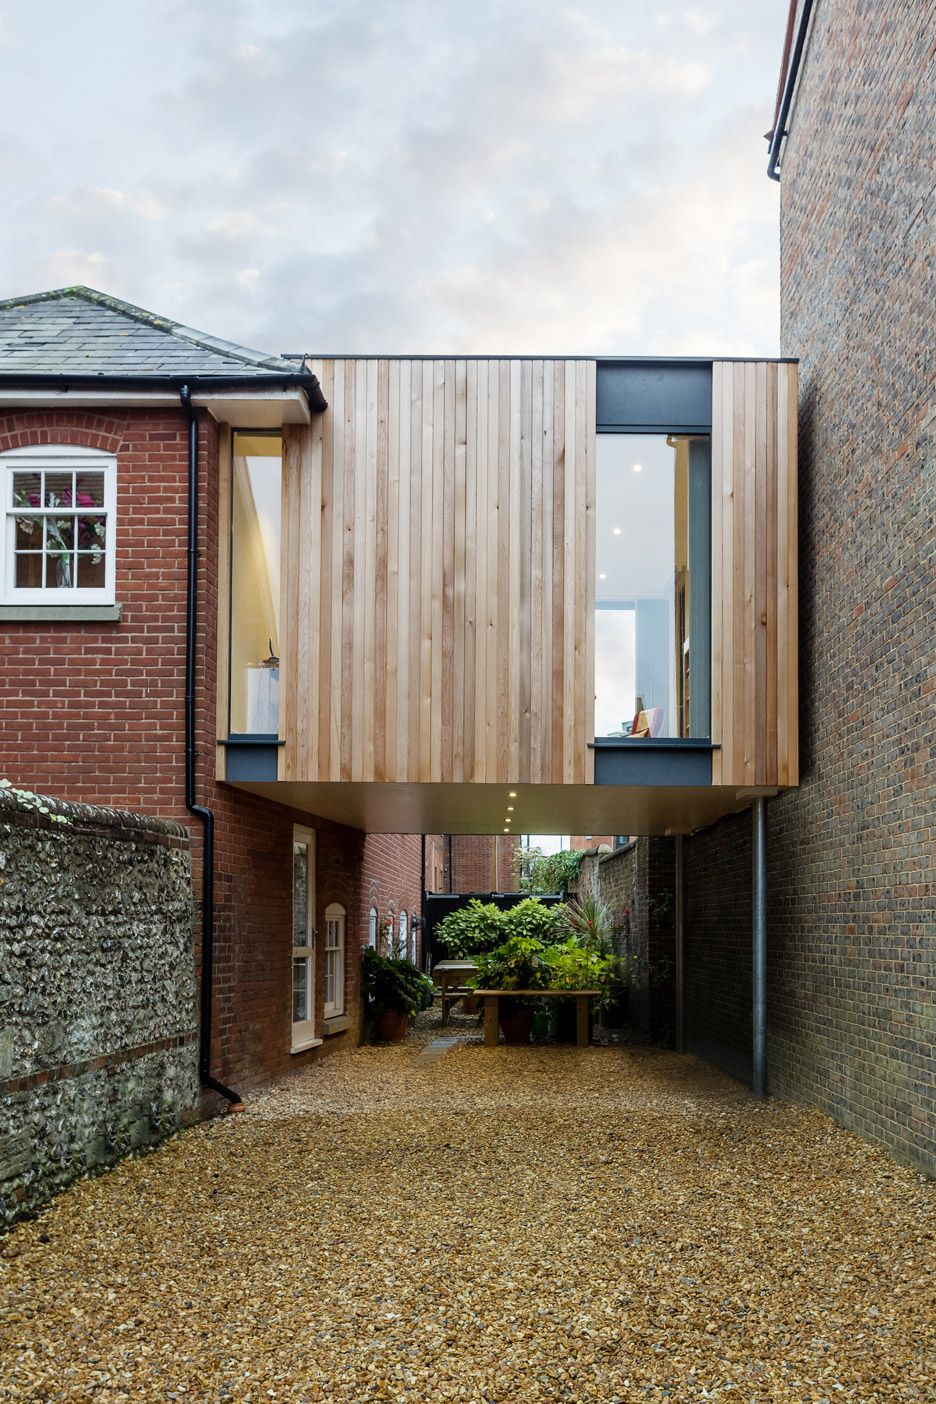 Adam architecture groundbreaking country house in hampshire - Architecture Austen House Extension By Adam Knibb Architects